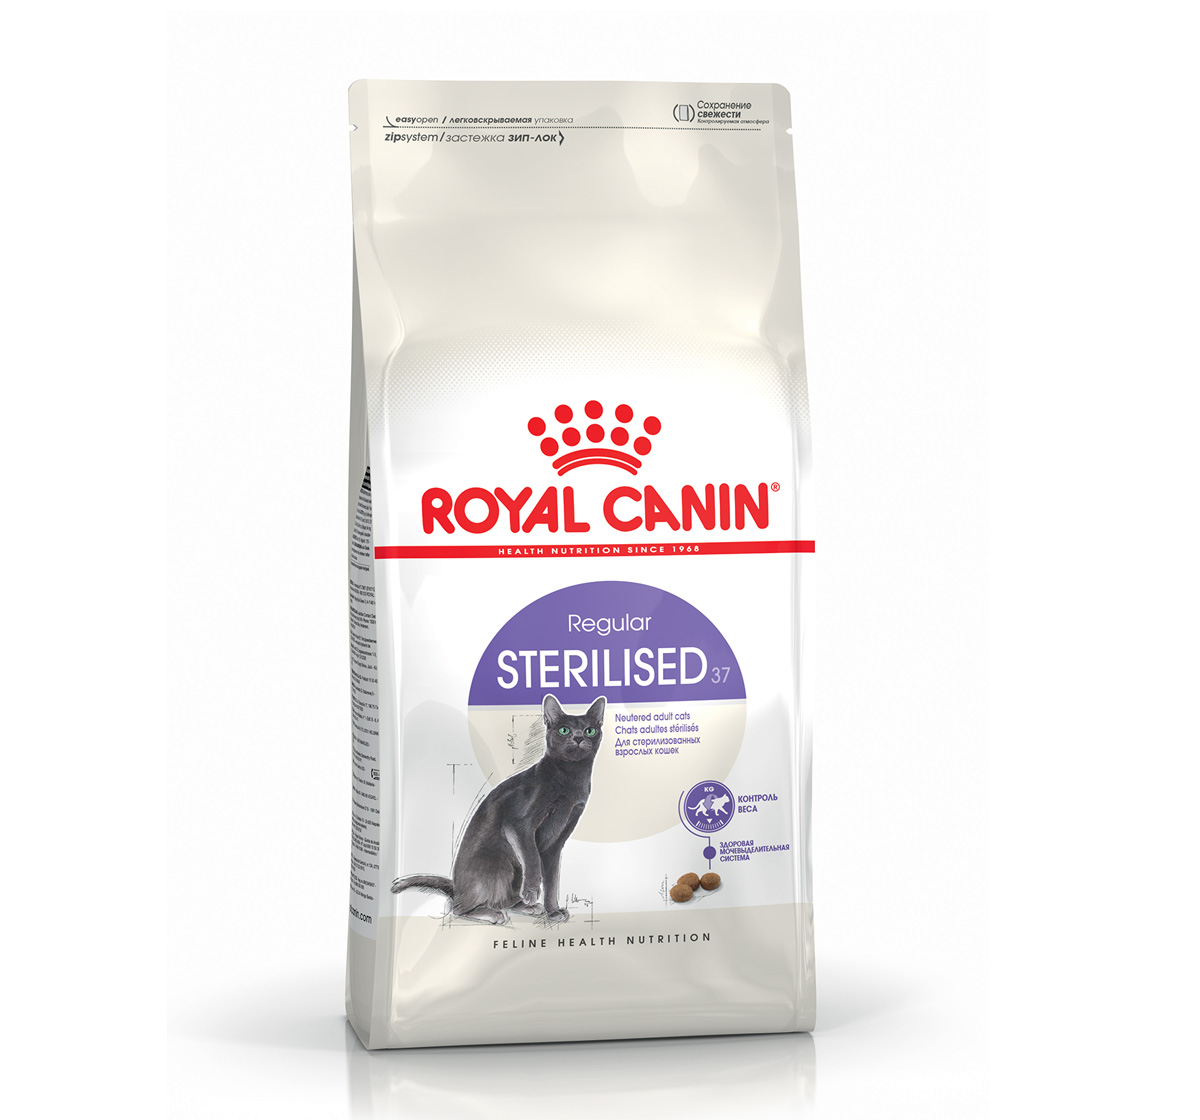 Royal Canin Sterilised Cat Food - 2Kg